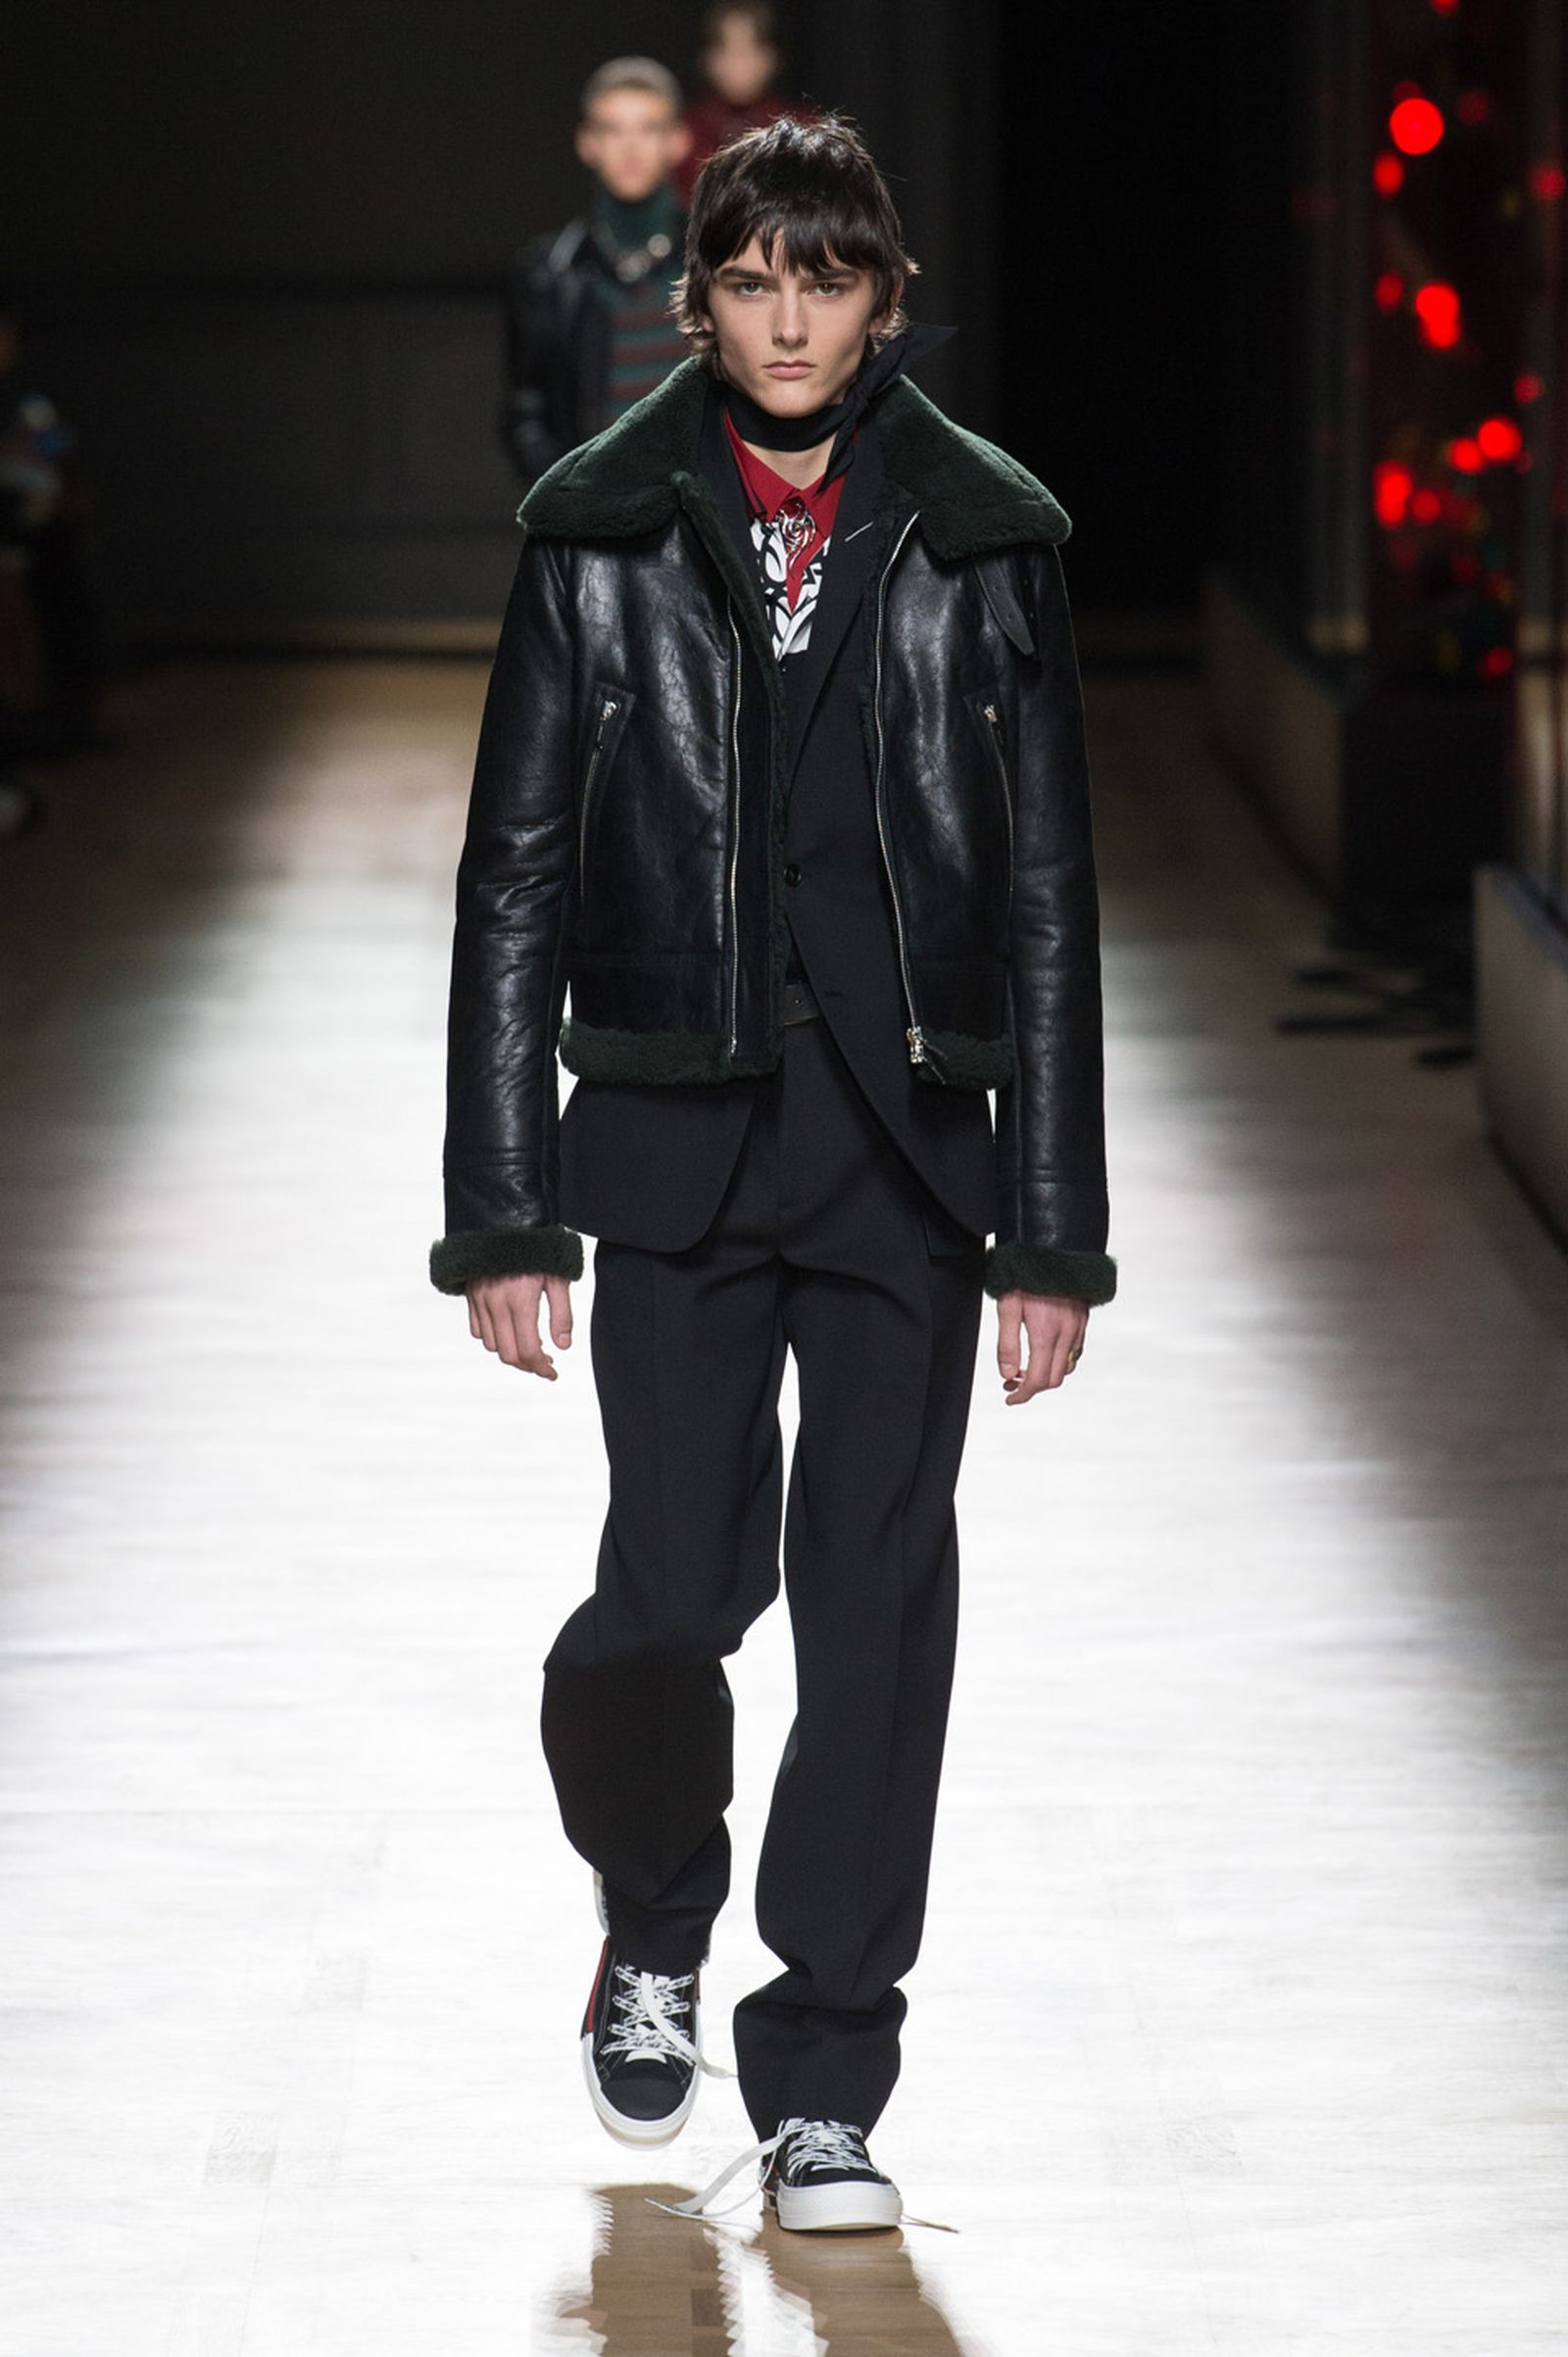 DIOR HOMME WINTER 18 19 BY PATRICE STABLE look16 Fall/WInter 2018 runway